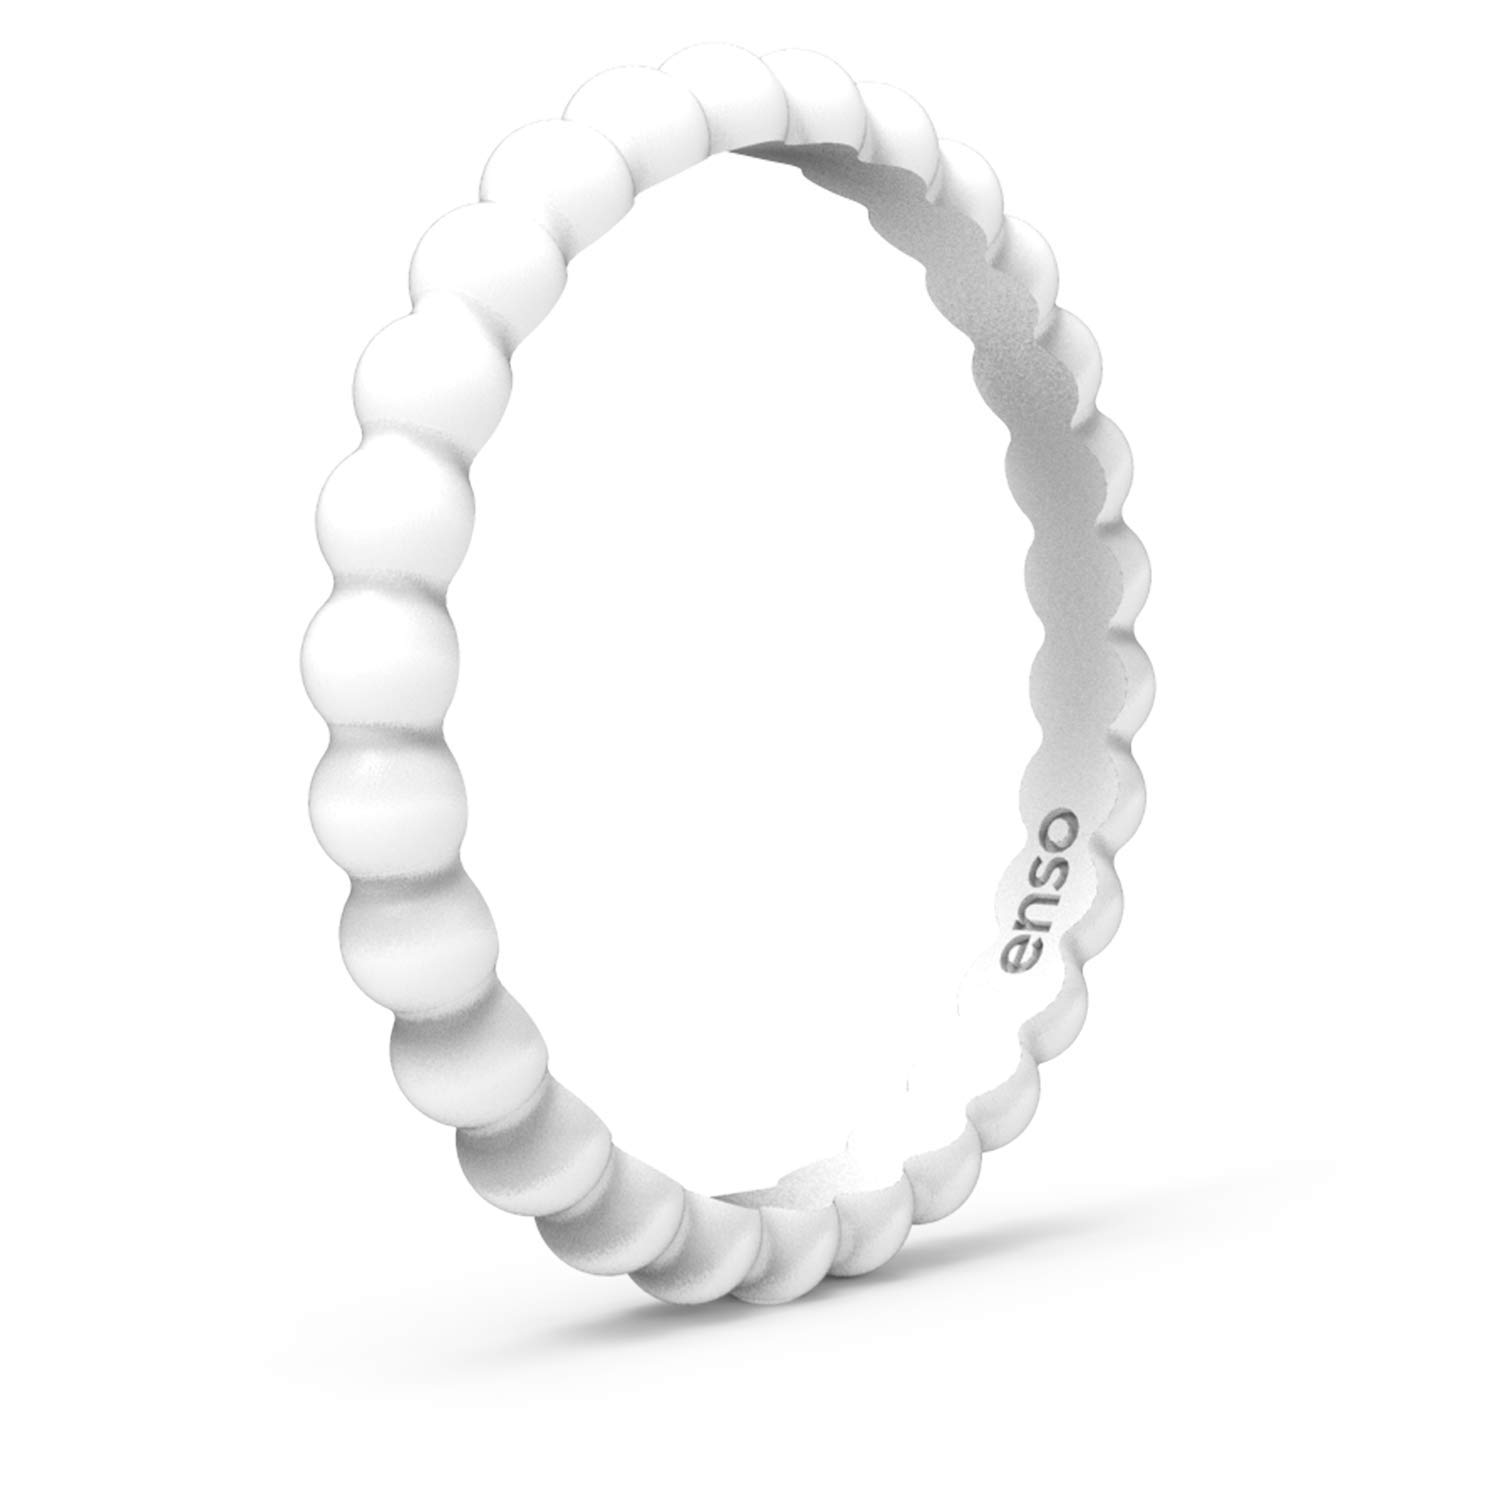 Enso Rings Beaded Silicone Ring | Premium Fashion Forward Silicone Ring | Hypoallergenic Medical Grade Silicone | Lifetime Quality Guarantee | Commit to What You Love (White, 6) by Enso Rings